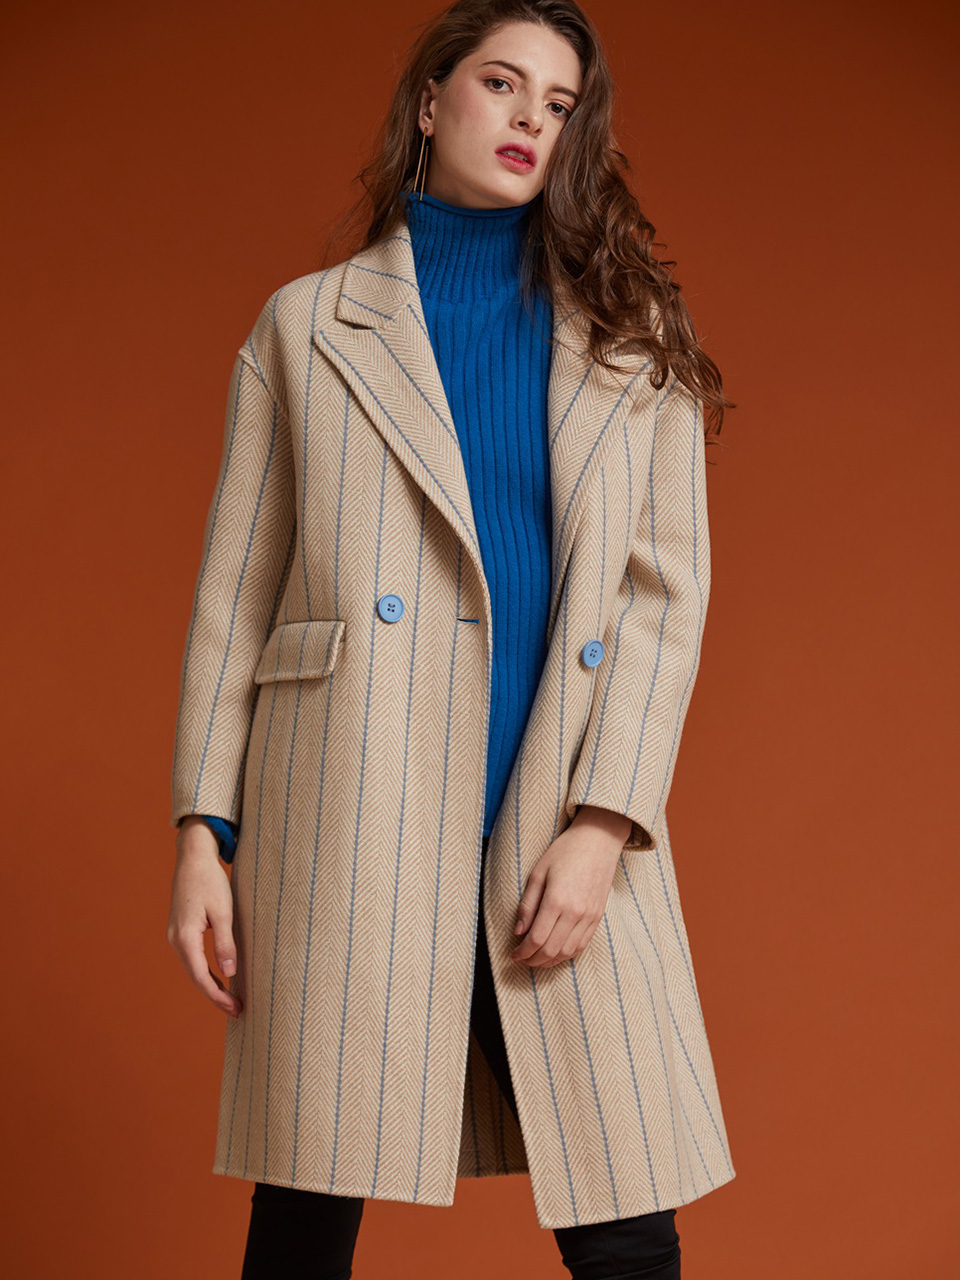 AHIN STRIPED HERRINGBONE COAT [HB-CO-501]